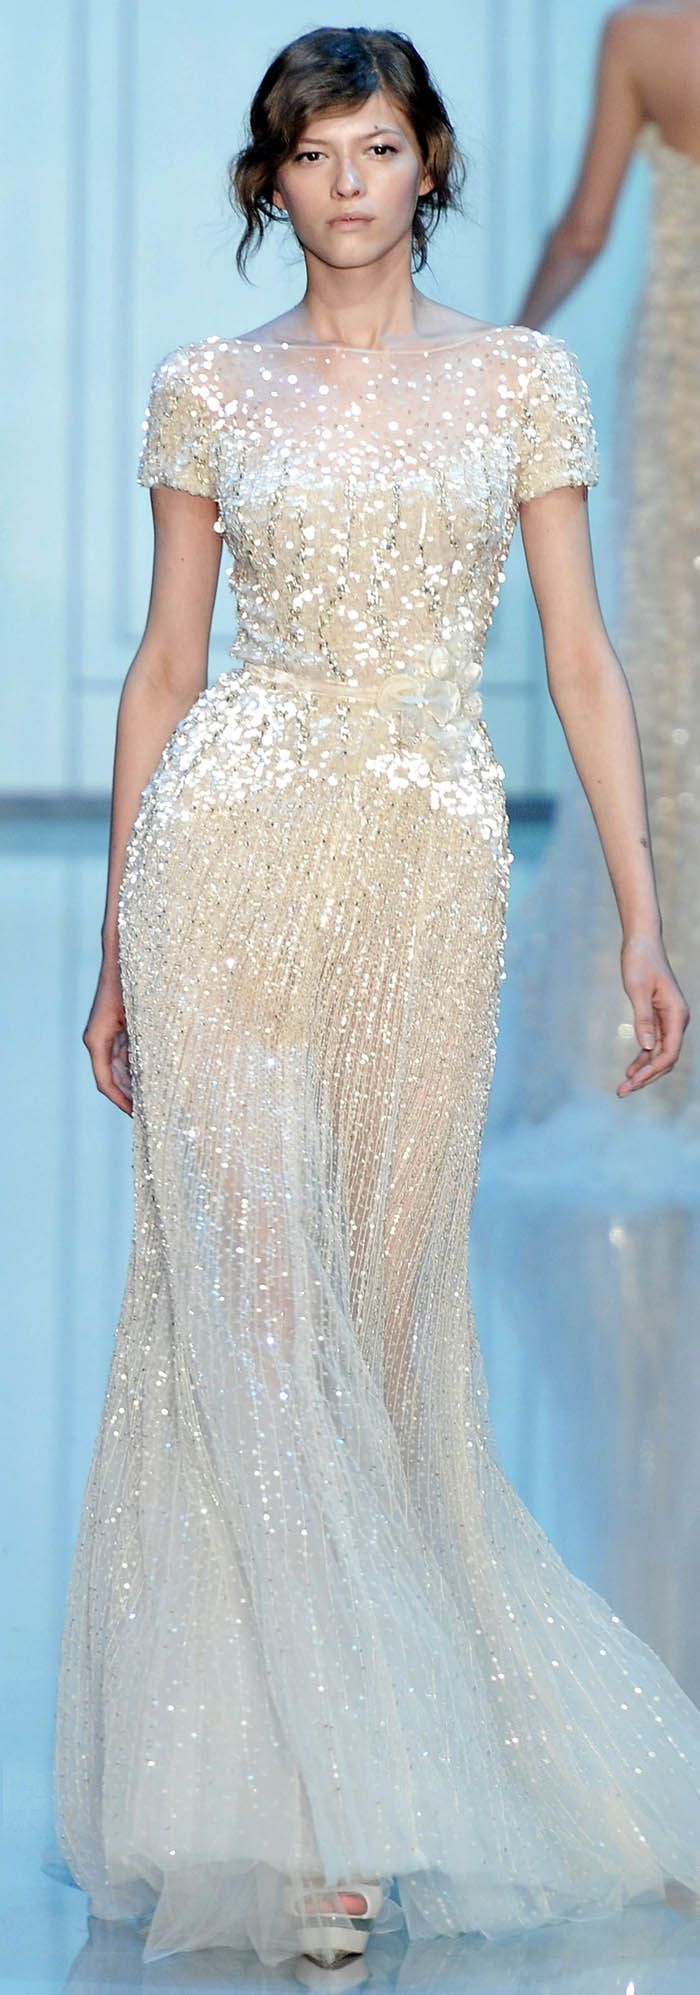 Elie Saab Fall Winter 2011 Haute Couture | Elie saab fall, Couture ...